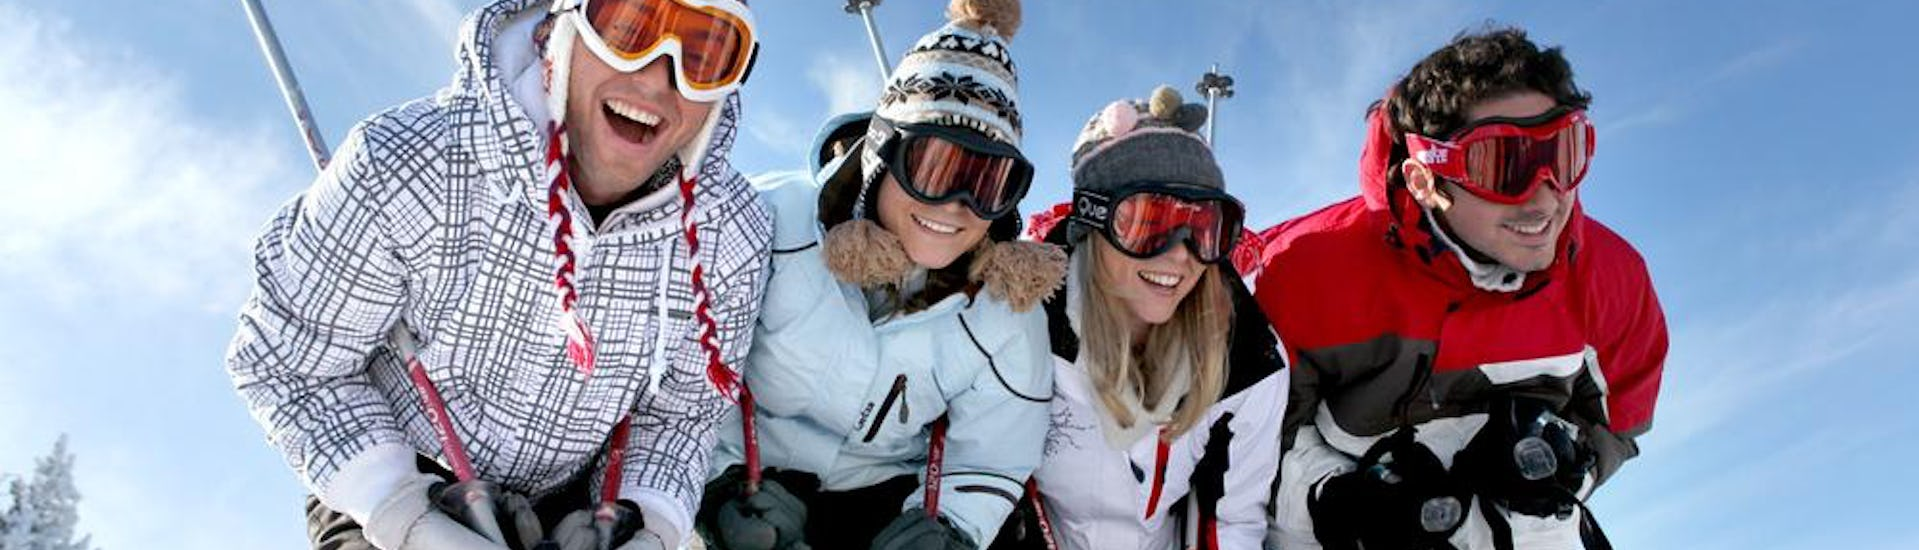 Ski Lessons for Teens & Adults - Beginners